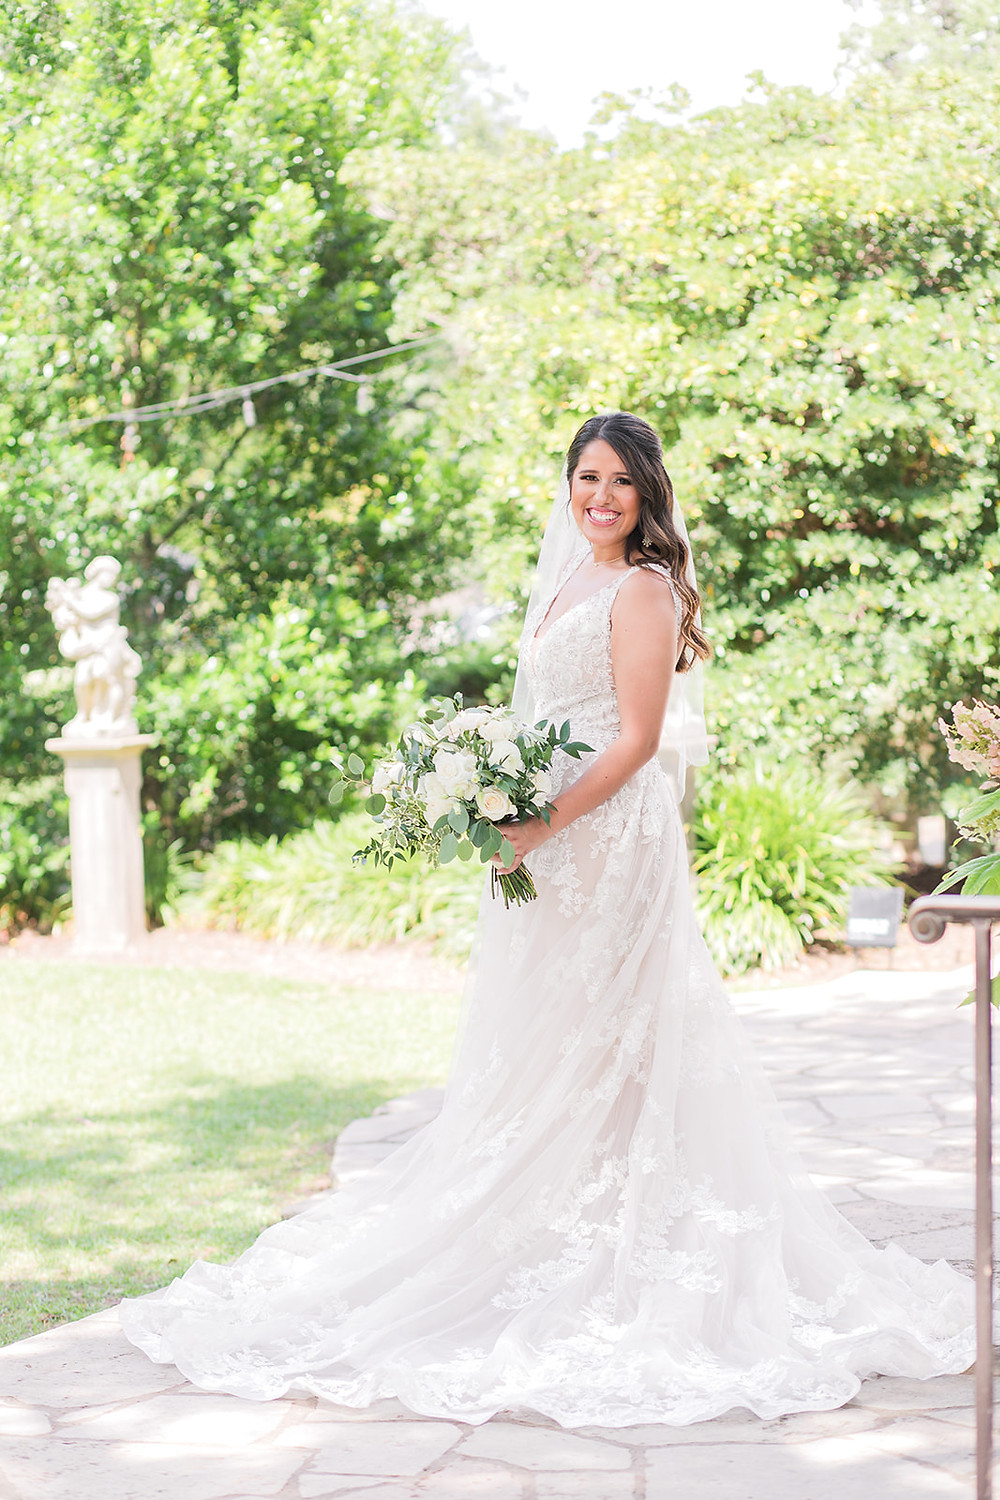 Blushing bride in lace gown